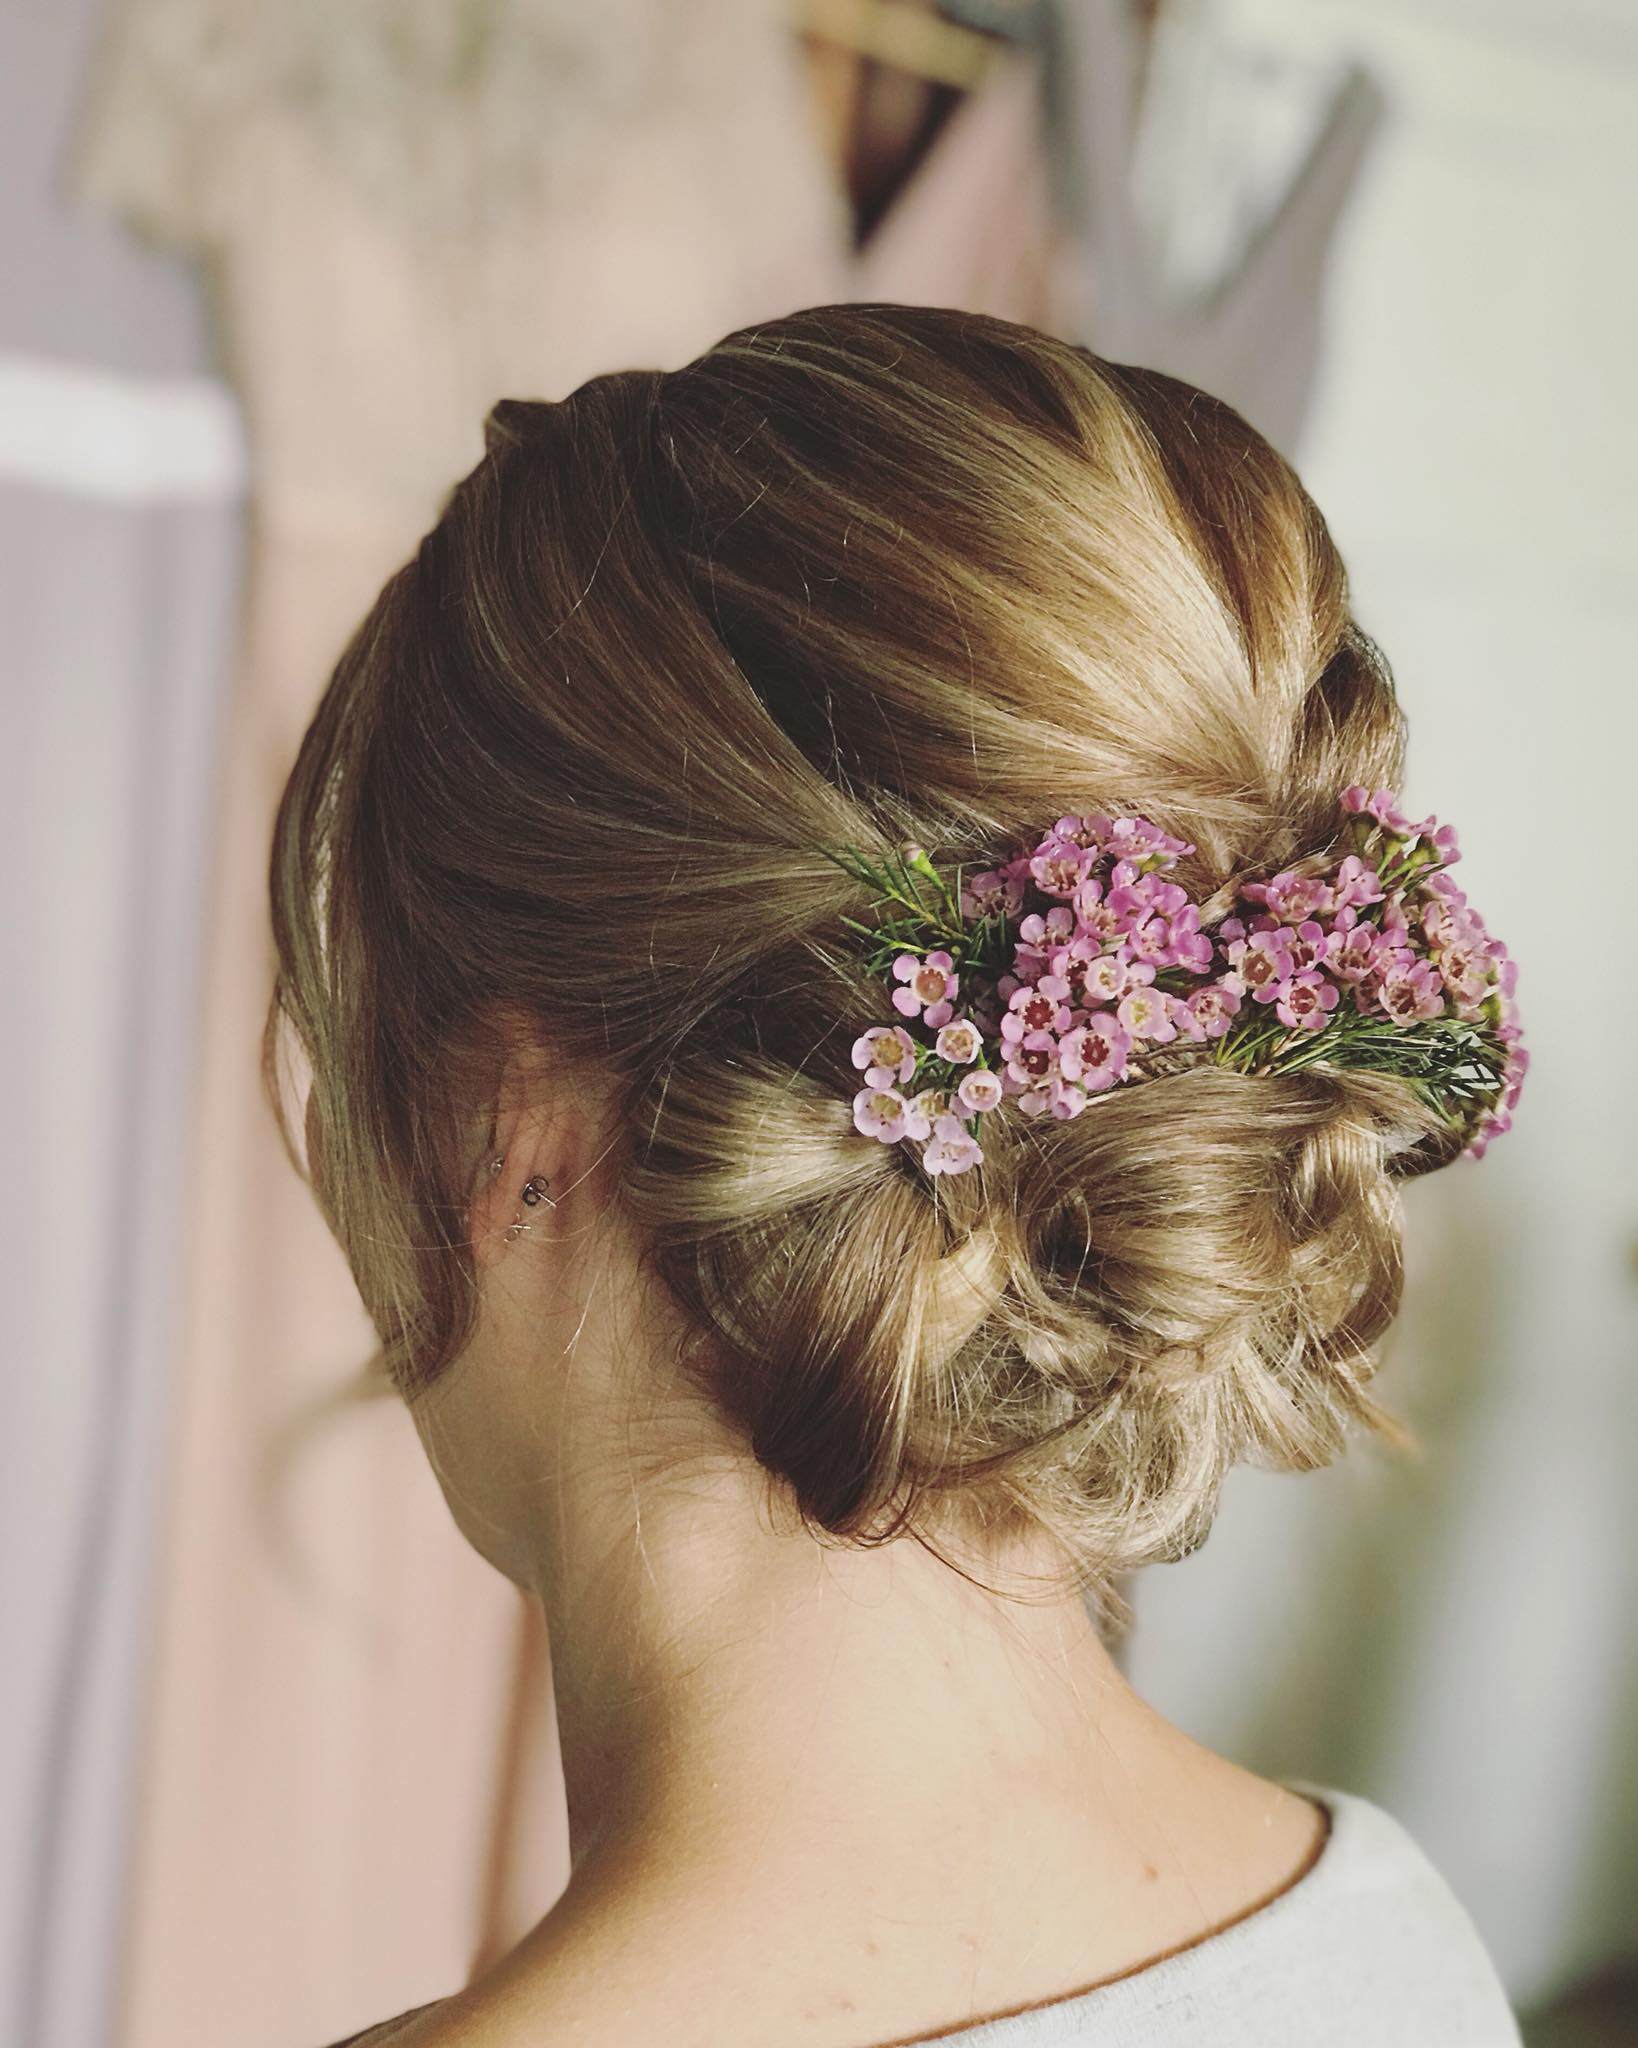 Hannah Woodgates Hair Design floral updo | Image courtesy of Hannah Woodgates